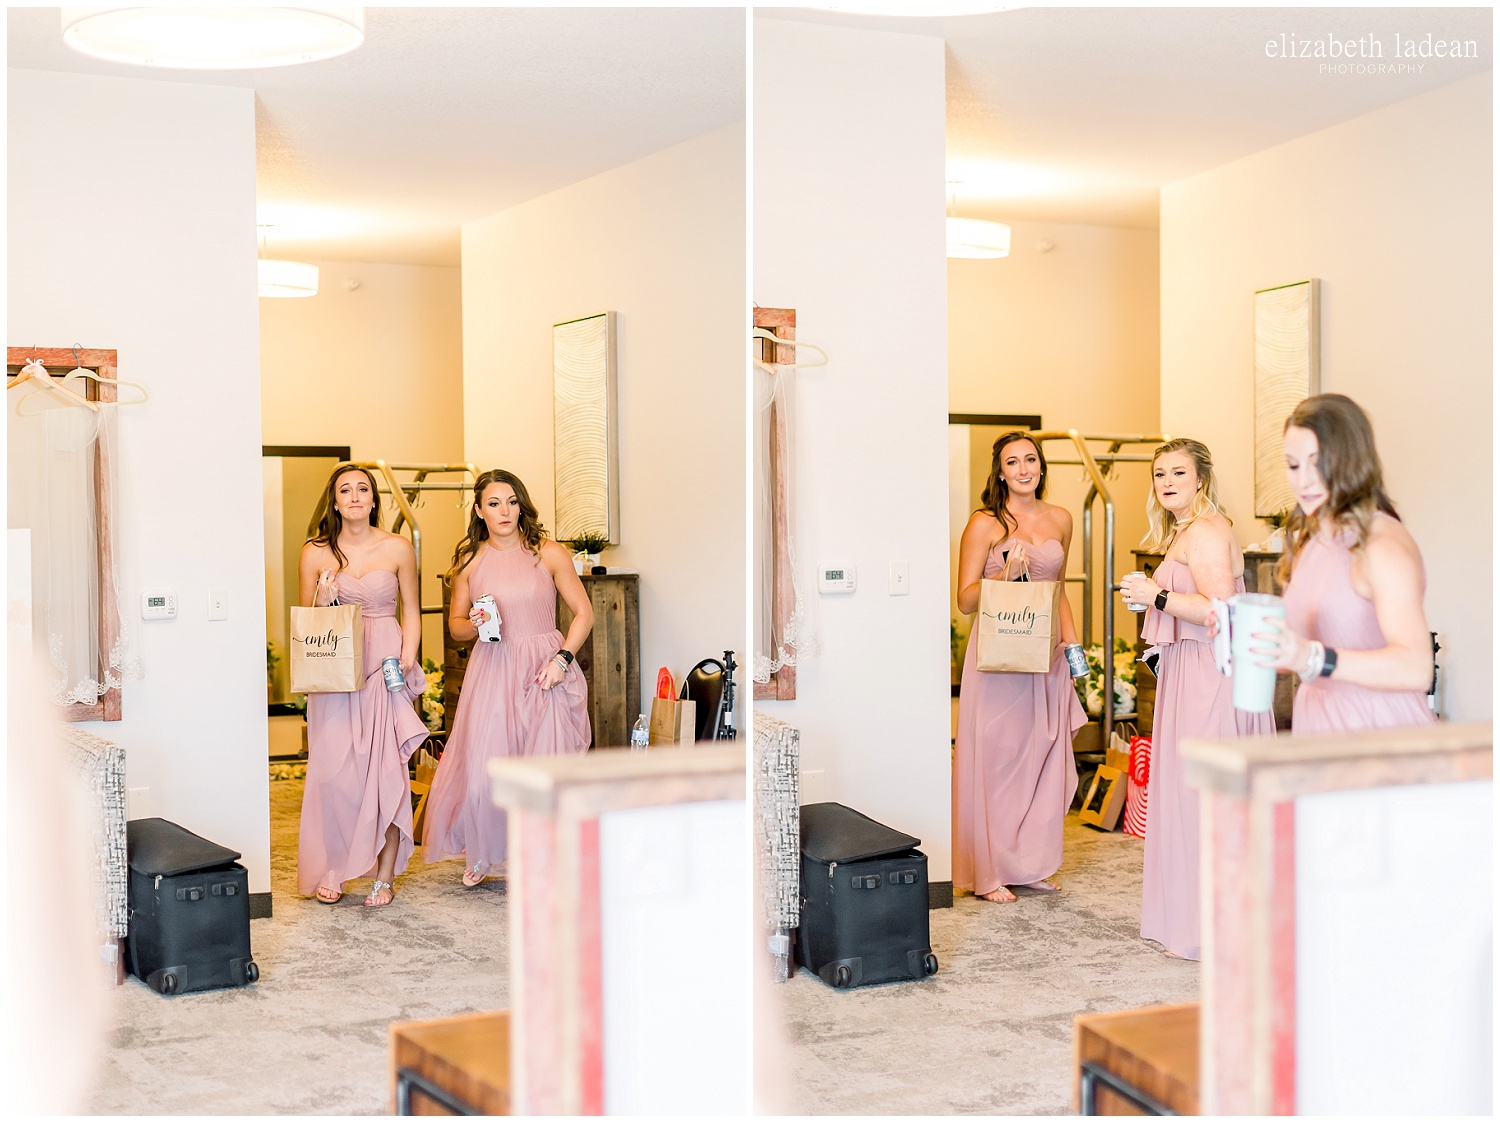 -behind-the-scenes-of-a-wedding-photographer-2018-elizabeth-ladean-photography-photo_3495.jpg